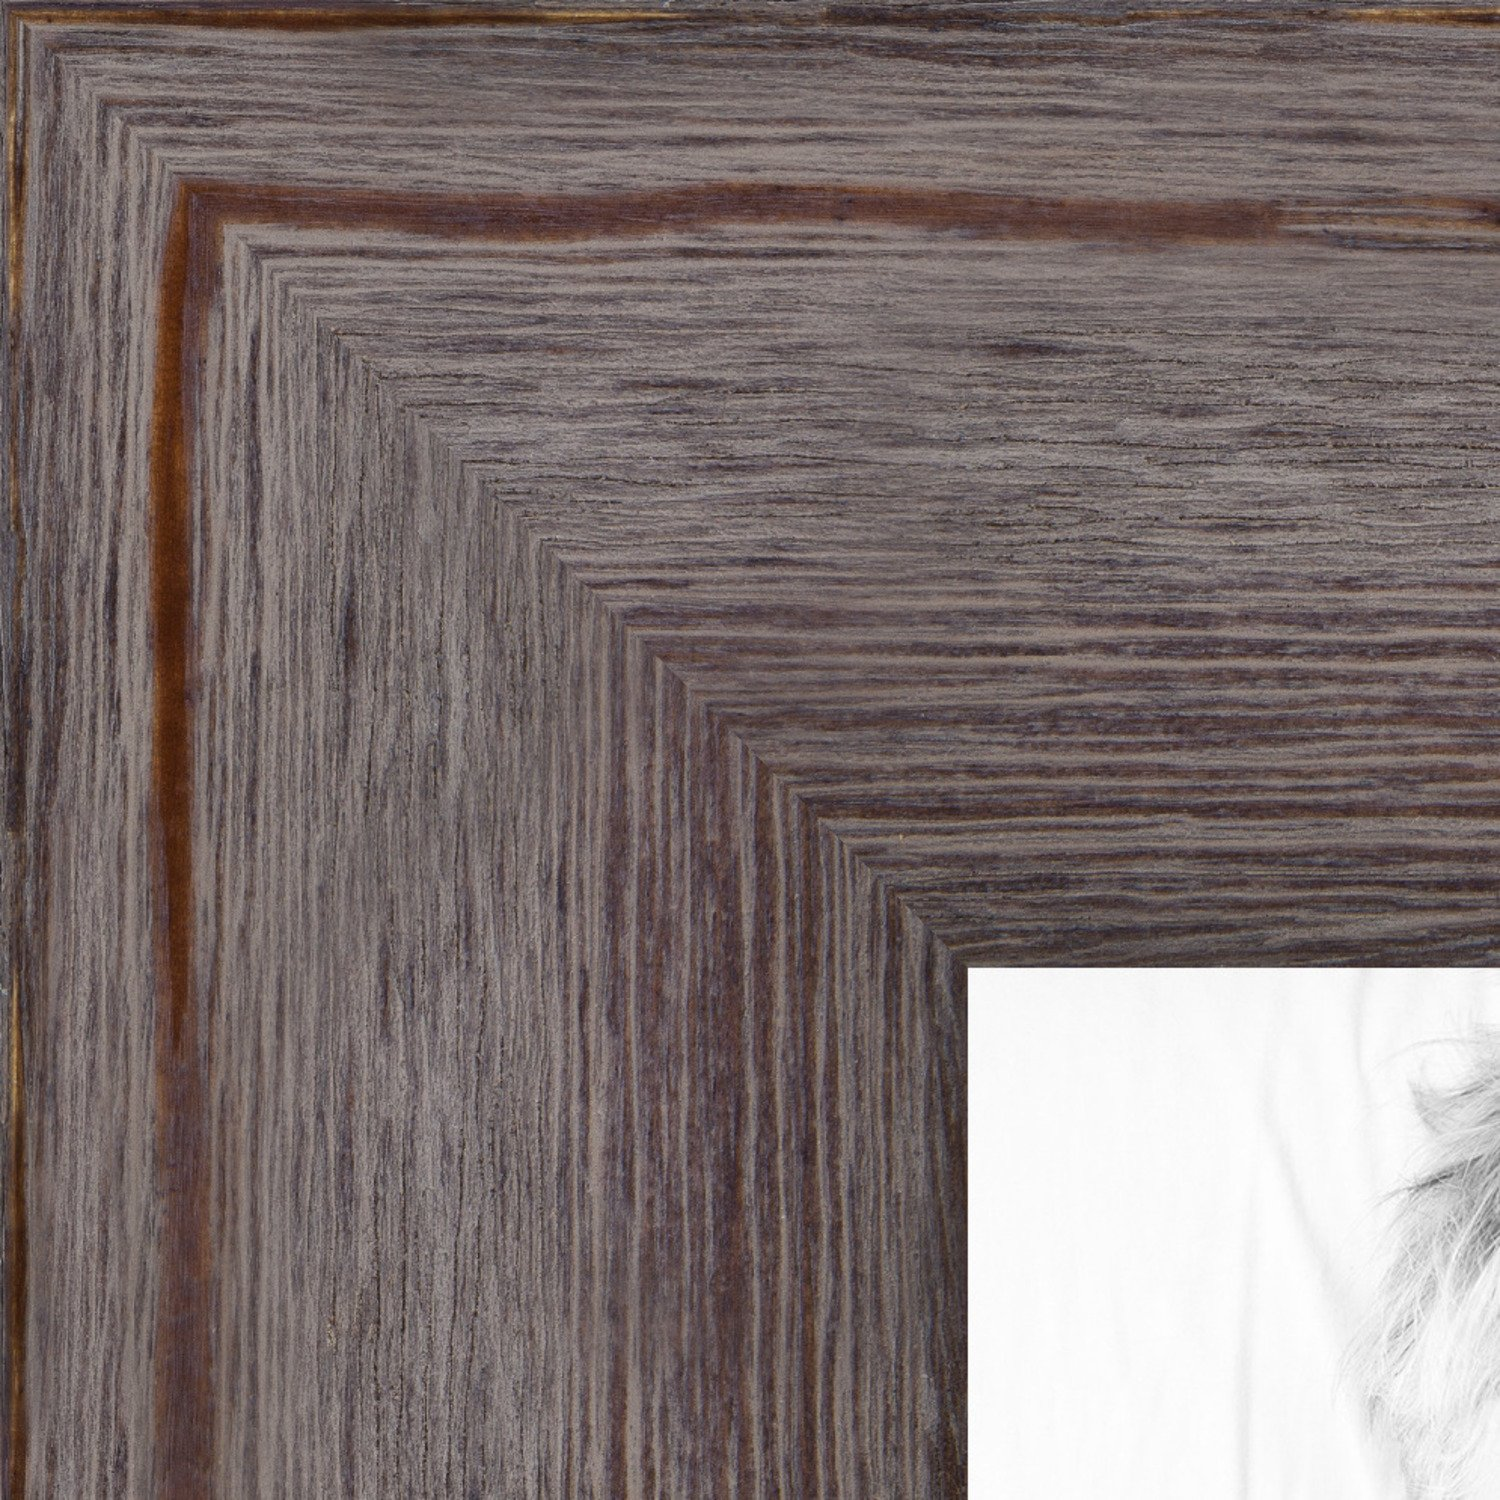 ArtToFrames 8x12 inch Grey - Distressed Wood Wood Picture Frame, WOM82223-101-8x12